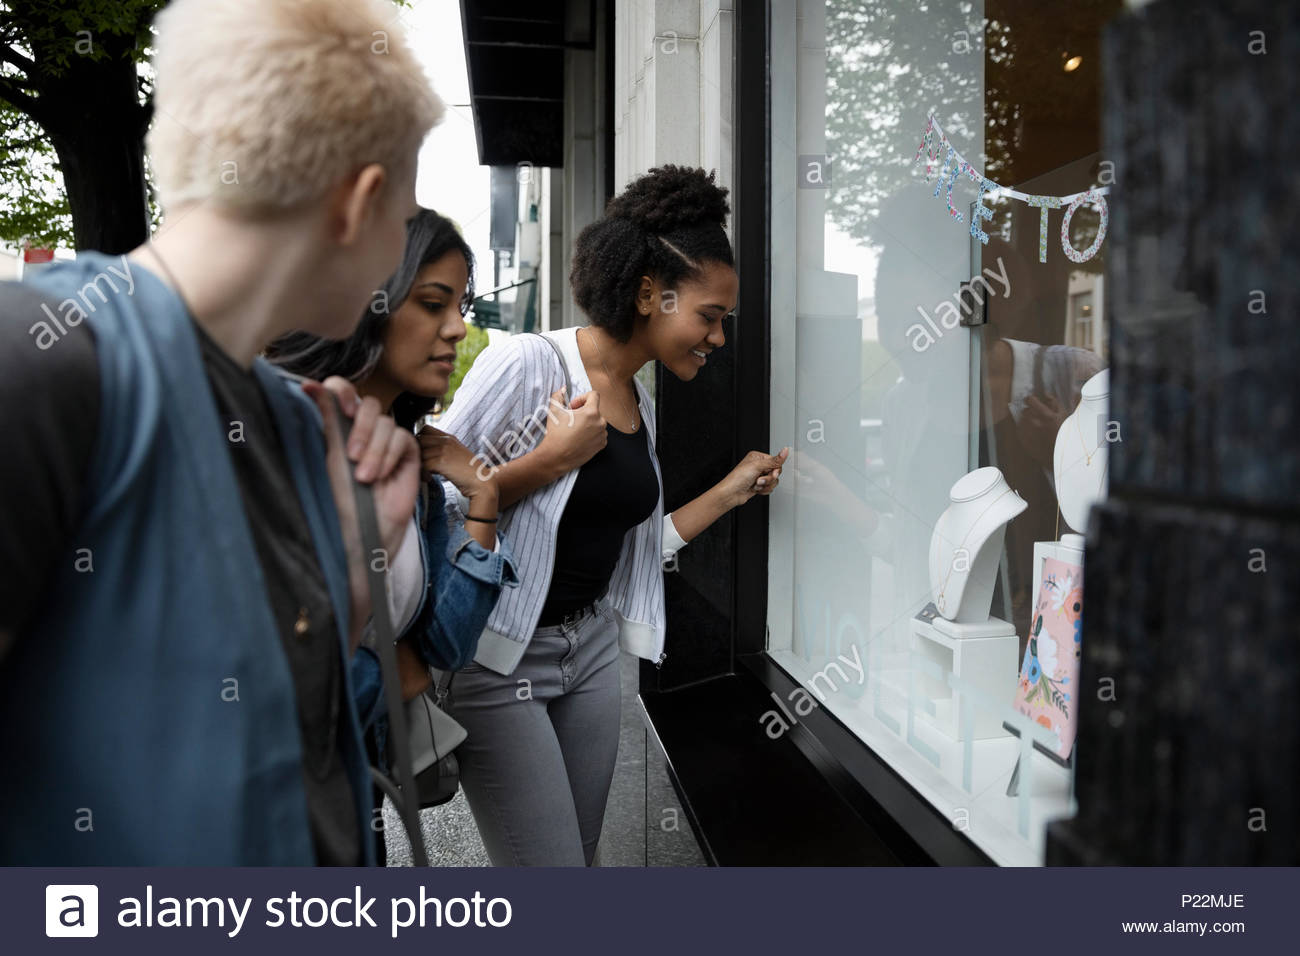 Les jeunes femmes window shopping Photo Stock